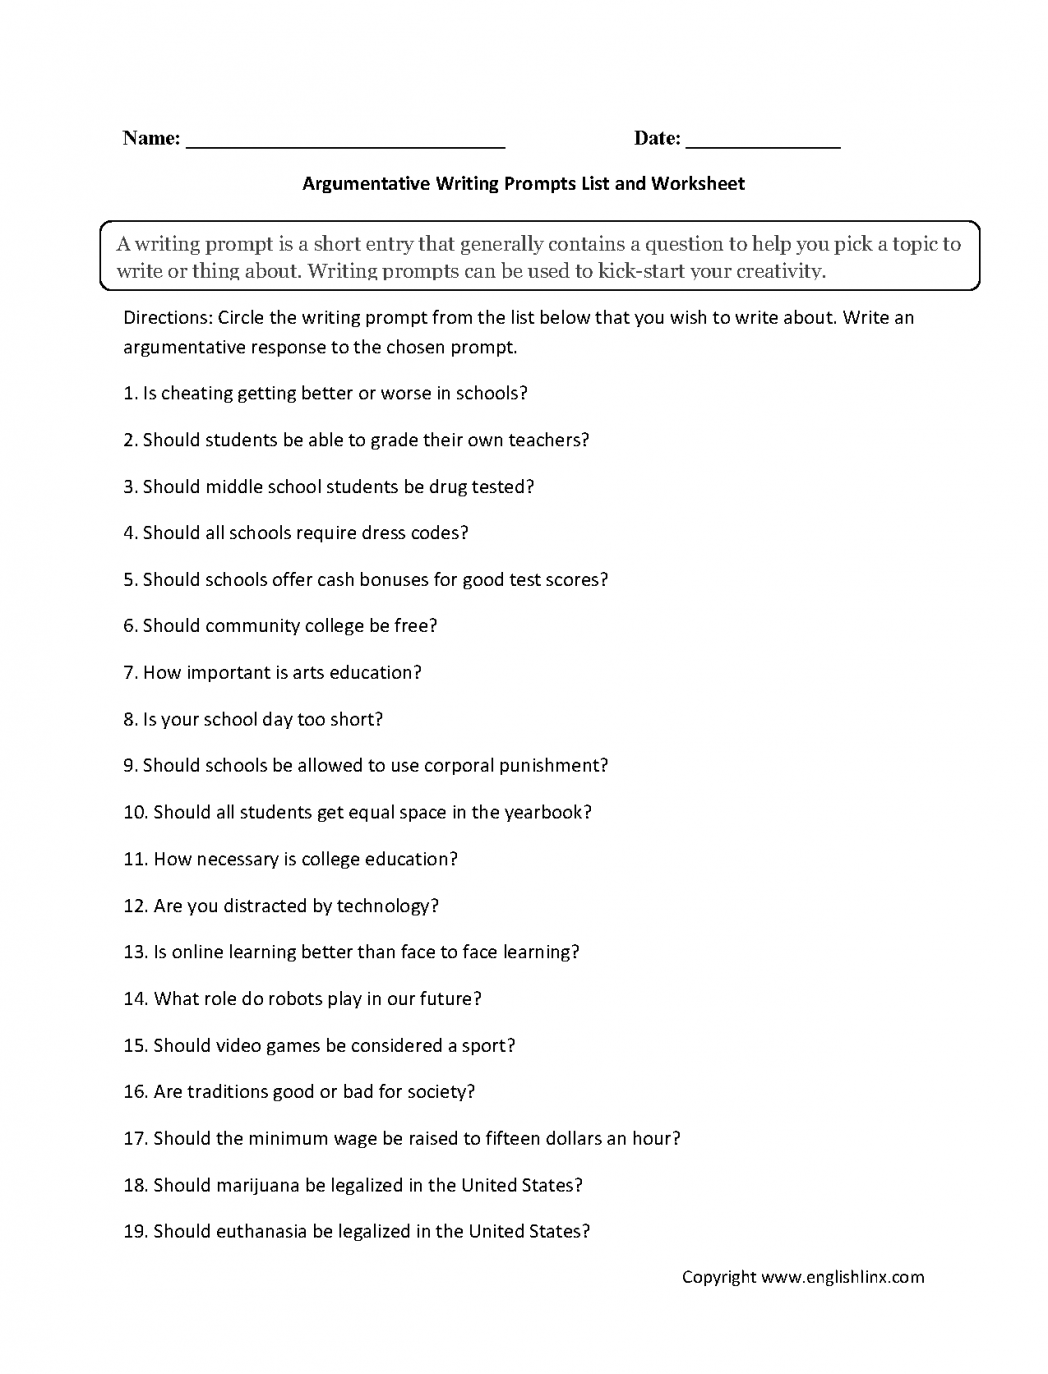 011 Argument Essay Prompts Goal Blockety Co Argumentative Topics Writing List Work For High School Subjects About Animals On Racism College Sports Middle 1048x1374 Excellent Questions Othello Paper Full